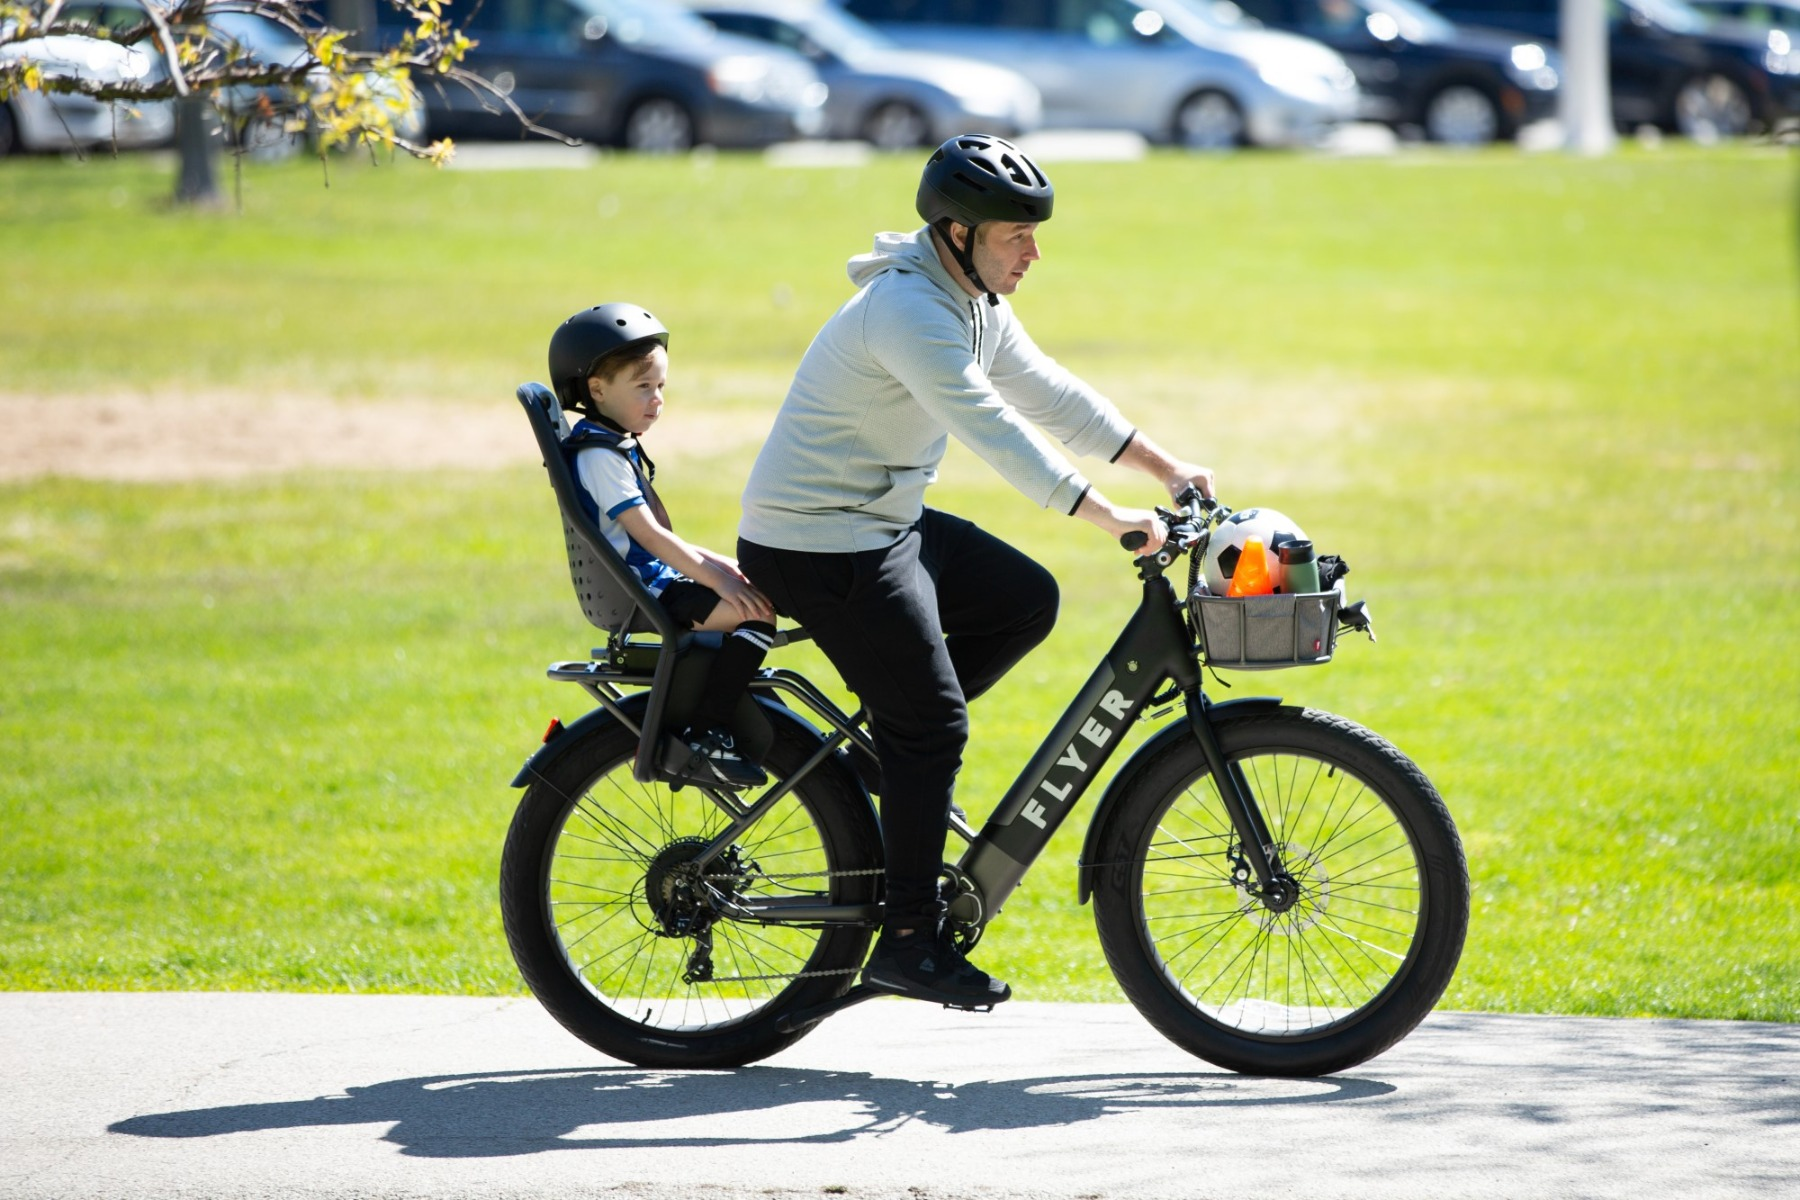 Father and son riding Flyer M880 black electric bike through the park using throttle only mode